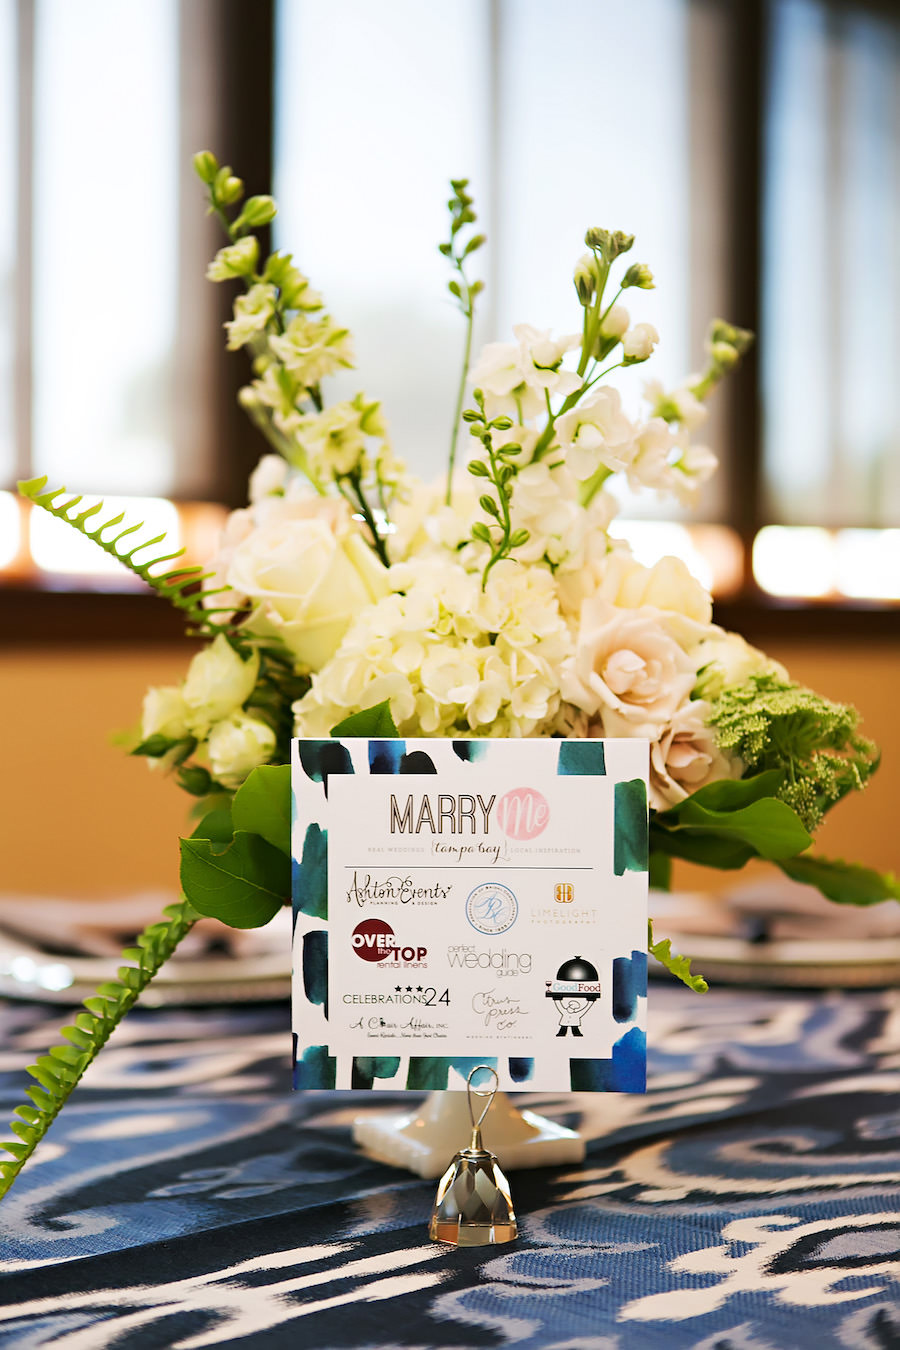 Tampa Bay/Lakeland/Sarasota Wedding Networking Event   White Wedding Floral Centerpiece with Hydrangeas, Pink Roses and Greenery and Navy Blue Linens   Over the Top Linen Rentals